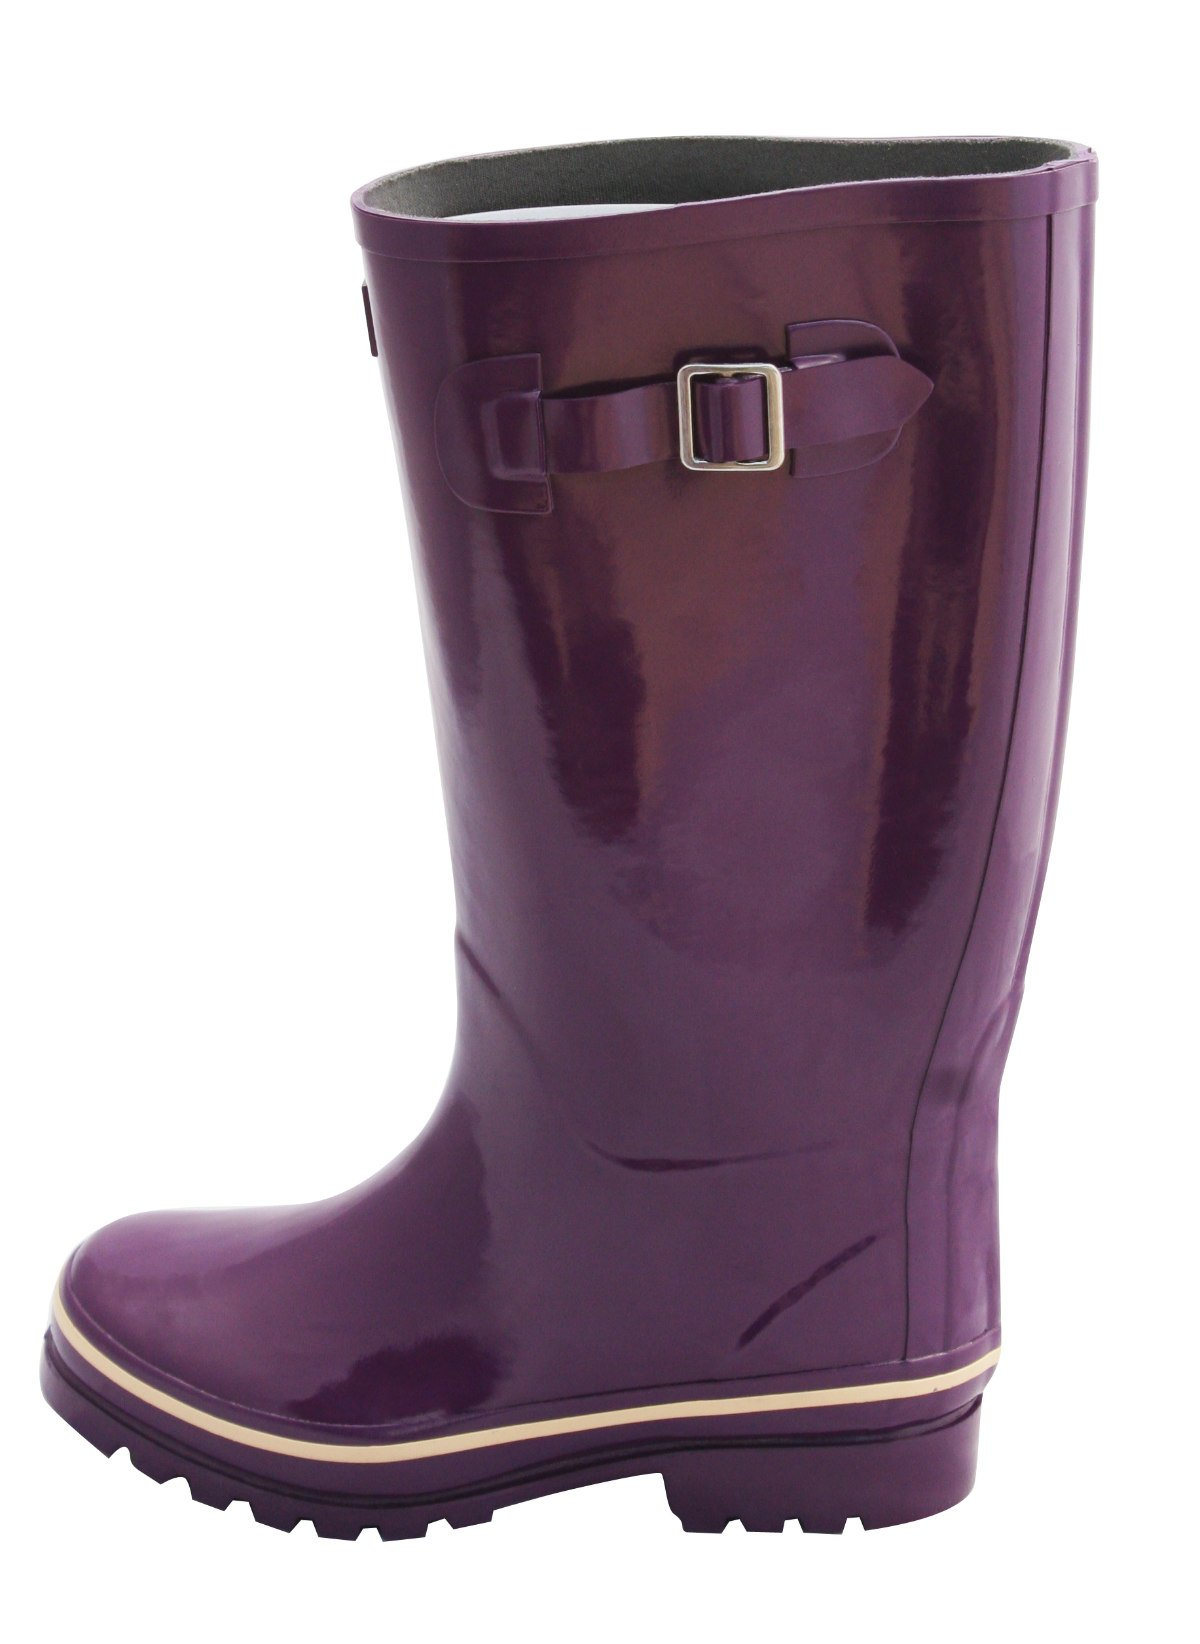 Jileon Wide Calf All Weather Durable Rubber Rain Boots for Women-Soft & Fluffy Lining on The Inside–Fits Calf Sizes up to 18 inches (7 W (Wide) US, Purple Gloss)